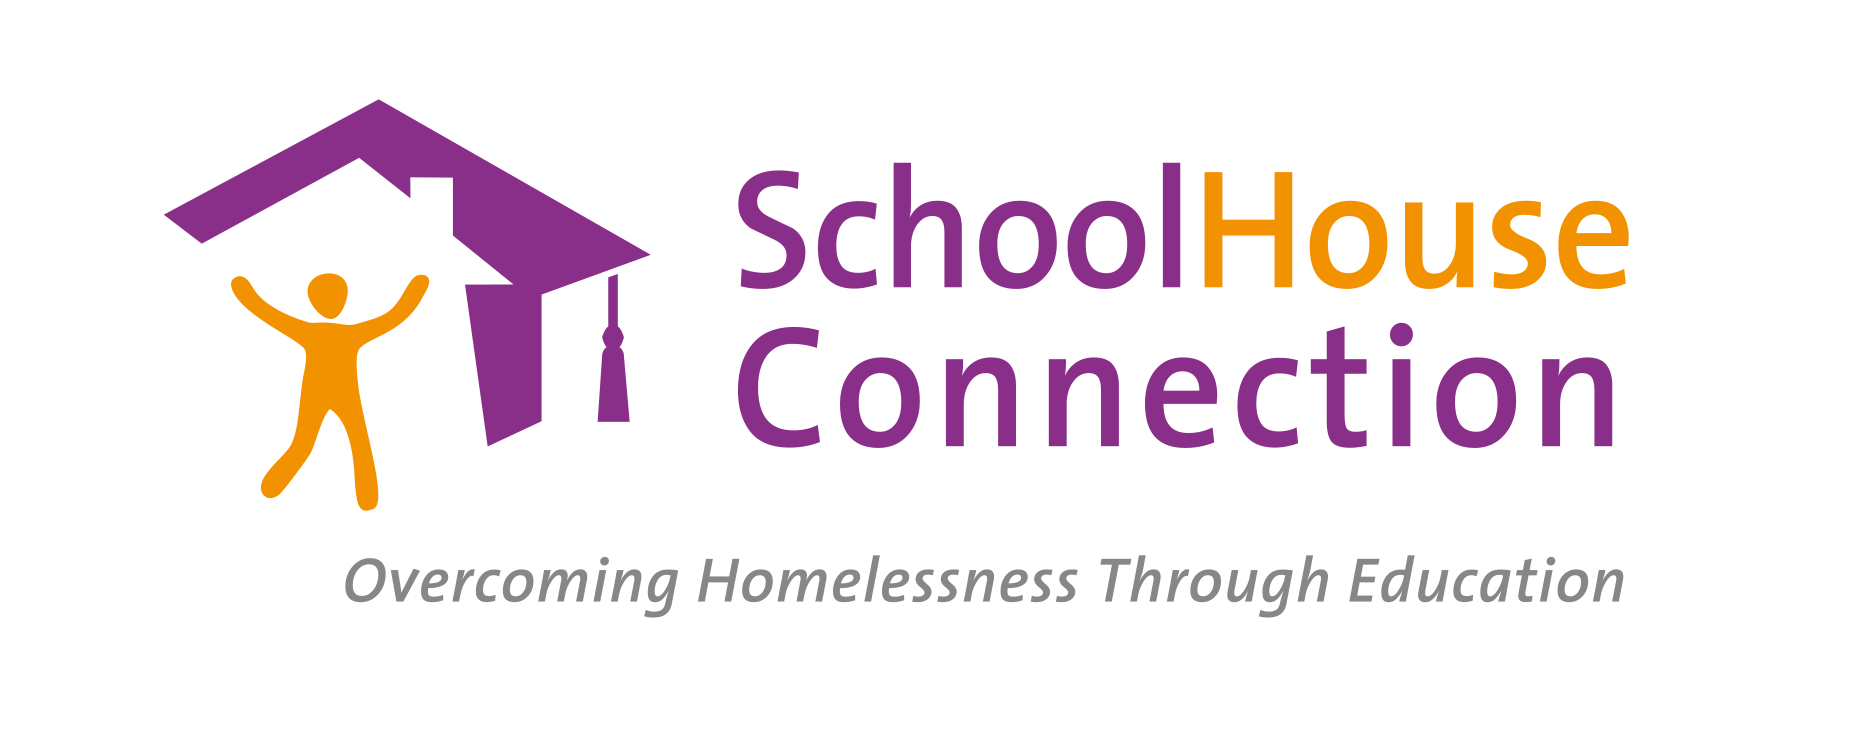 SchoolHouse Connection logo